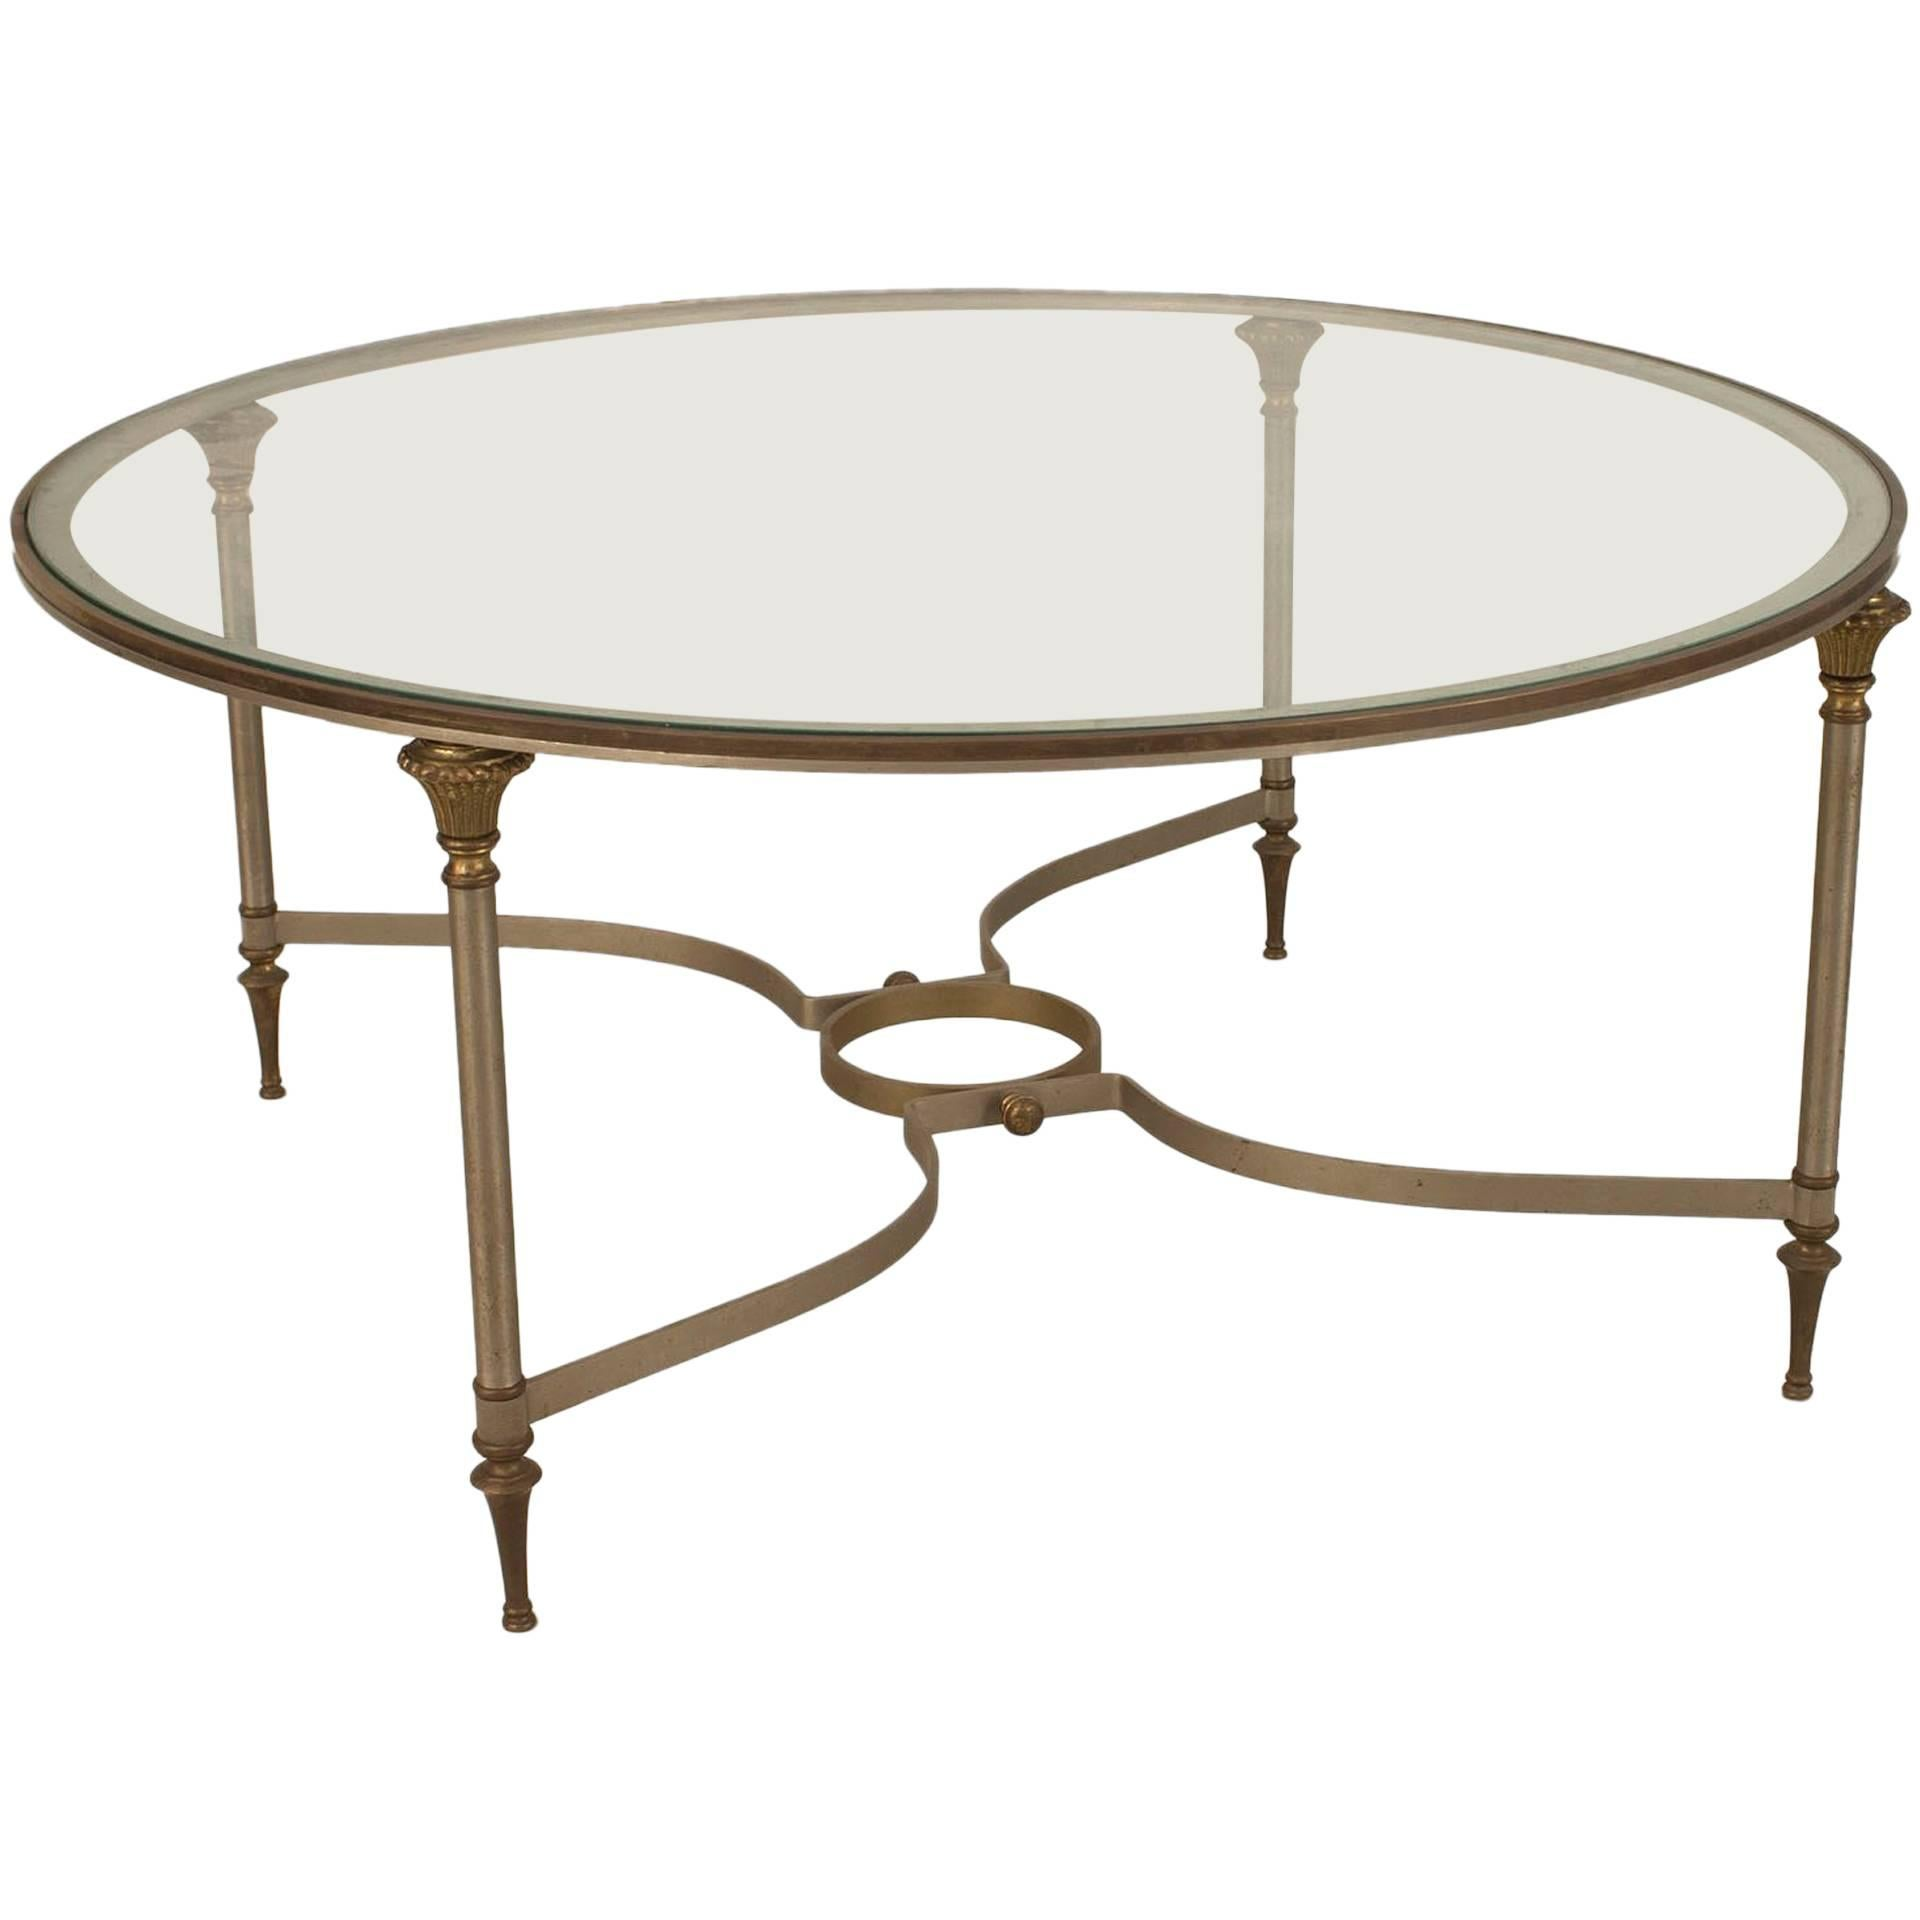 Modern Round Metal and Glass Coffee Table